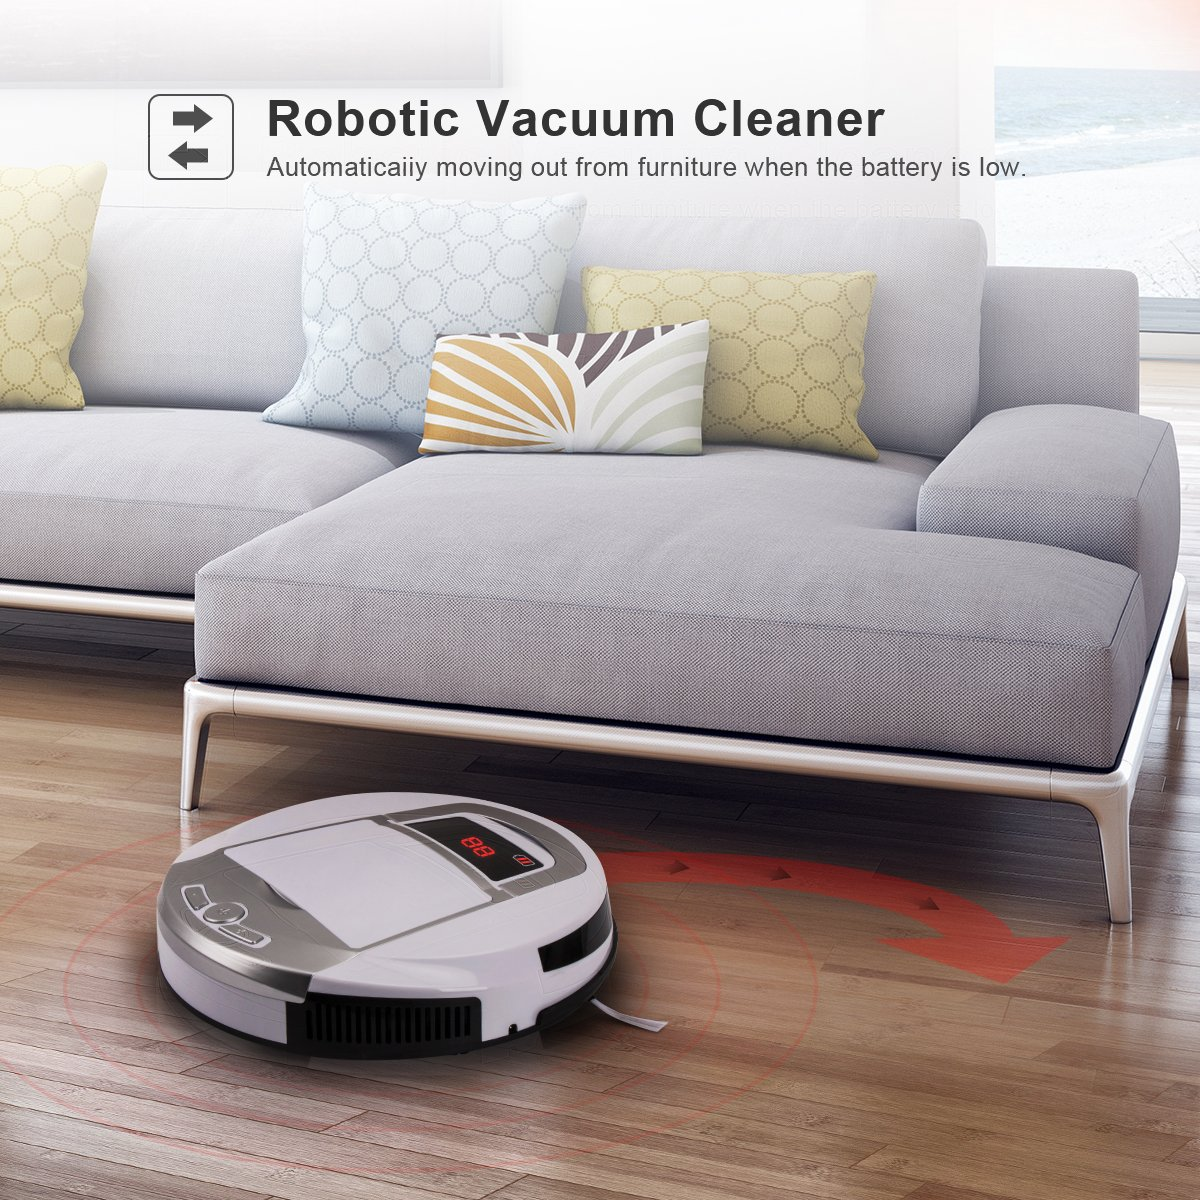 Robotic Vacuum Cleaner, Rechargeable Robotic Vacuum with Strong Suction and HEPA Double Filter, Anti-Cliff and Anti-Bump Sensor Robot for Pet Hair, Fur, Allergens, Thin Carpet, Hardwood and Tile Floor by FORTUNE DRAGON (Image #6)